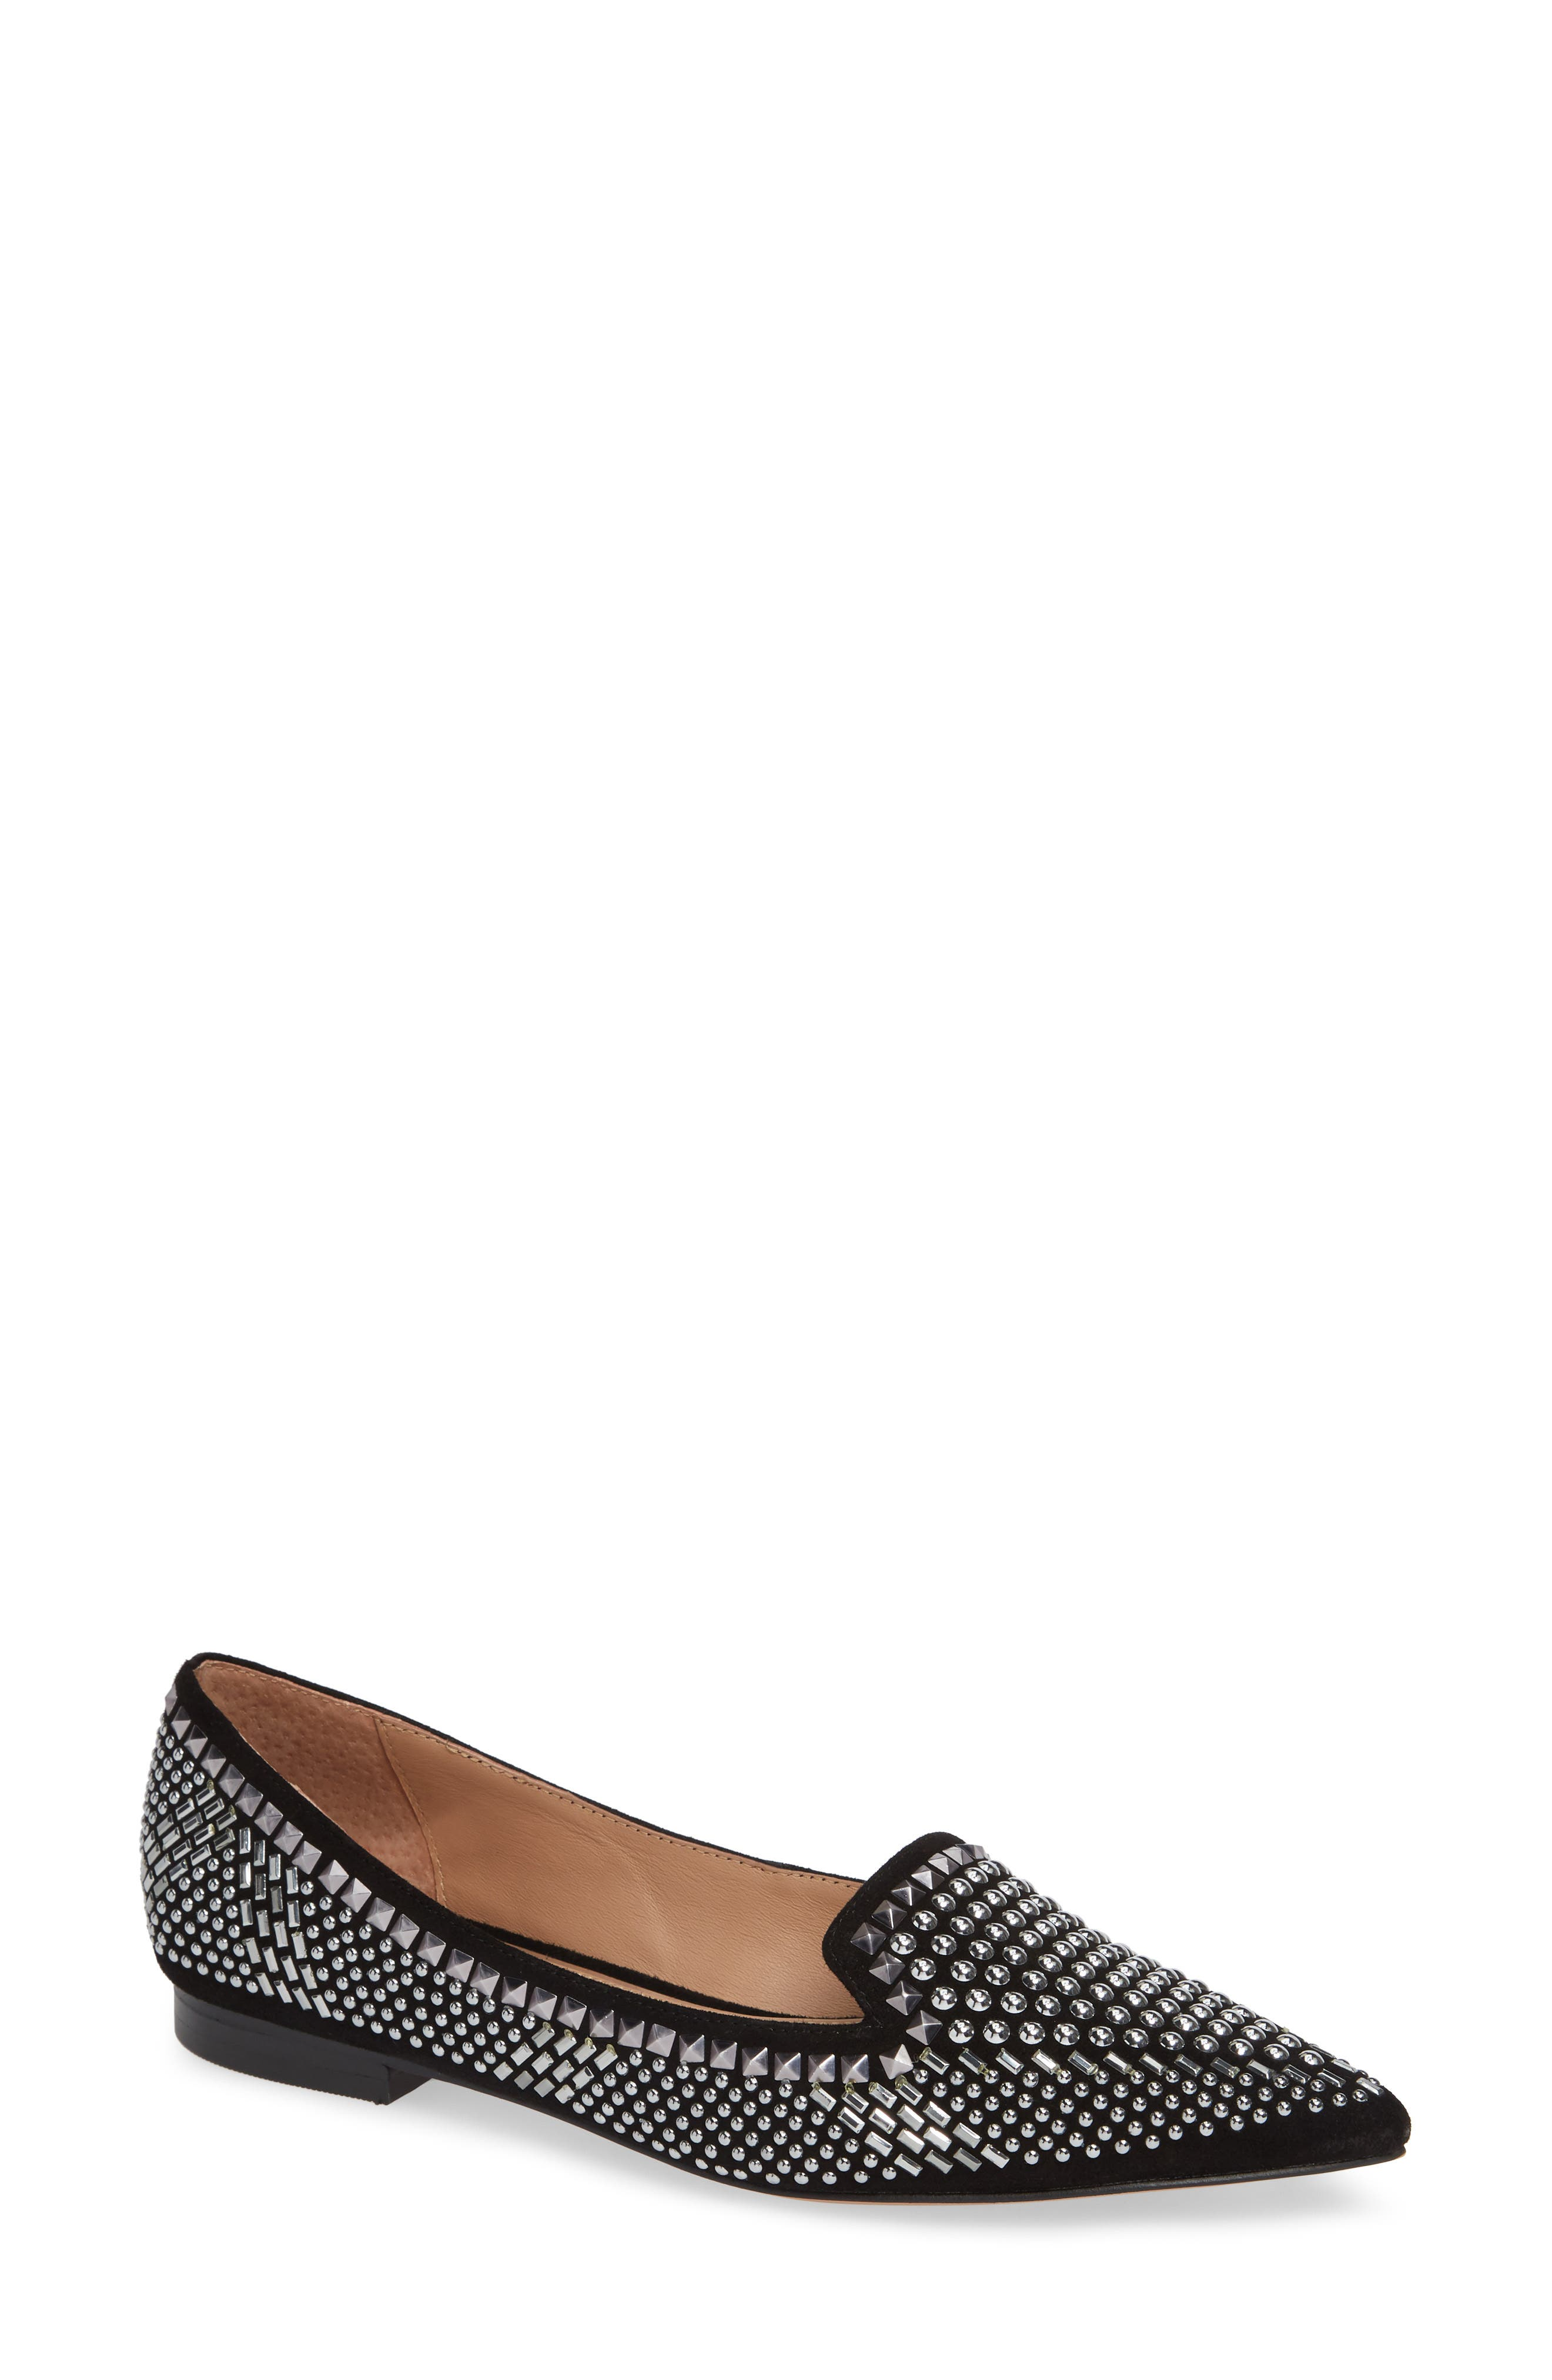 LINEA PAOLO, Portia Studded Loafer, Main thumbnail 1, color, BLACK SUEDE